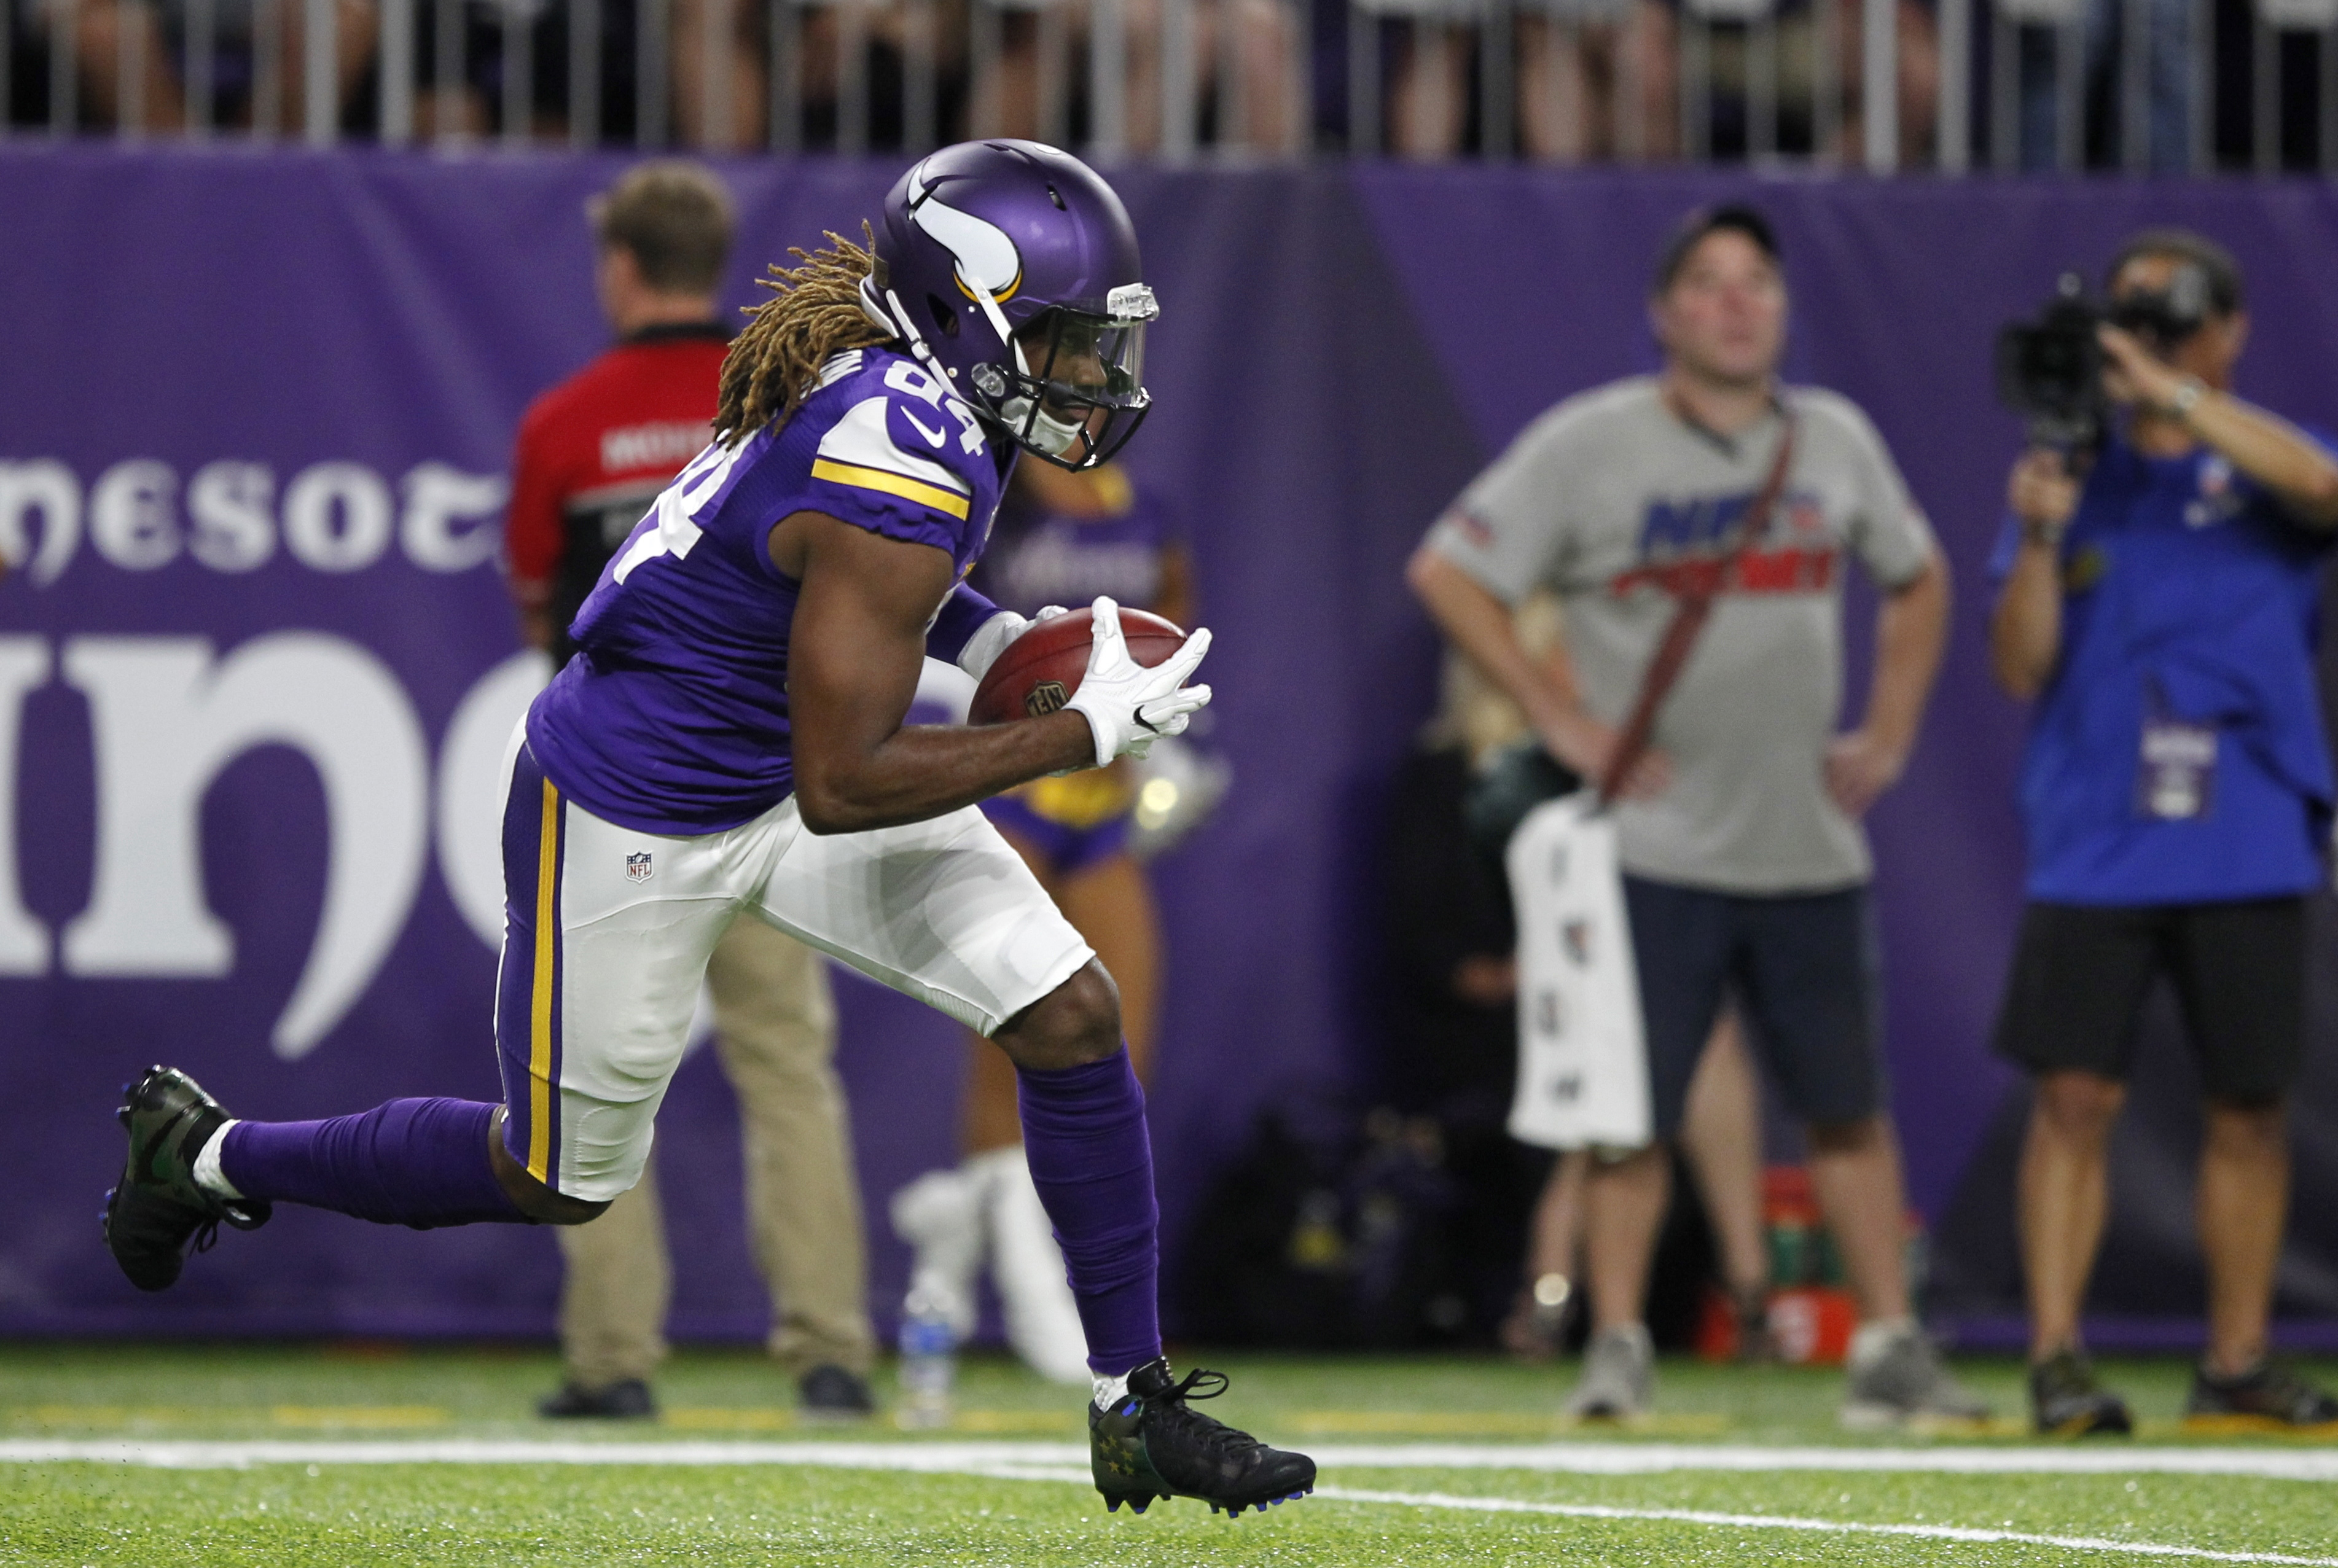 FILE - In this Sept. 18, 2016, file photo, Minnesota Vikings wide receiver Cordarrelle Patterson returns a kickoff during the first half of an NFL football game against the Green Bay Packers, in Minneapolis. Patterson might never be an every-down wide rec